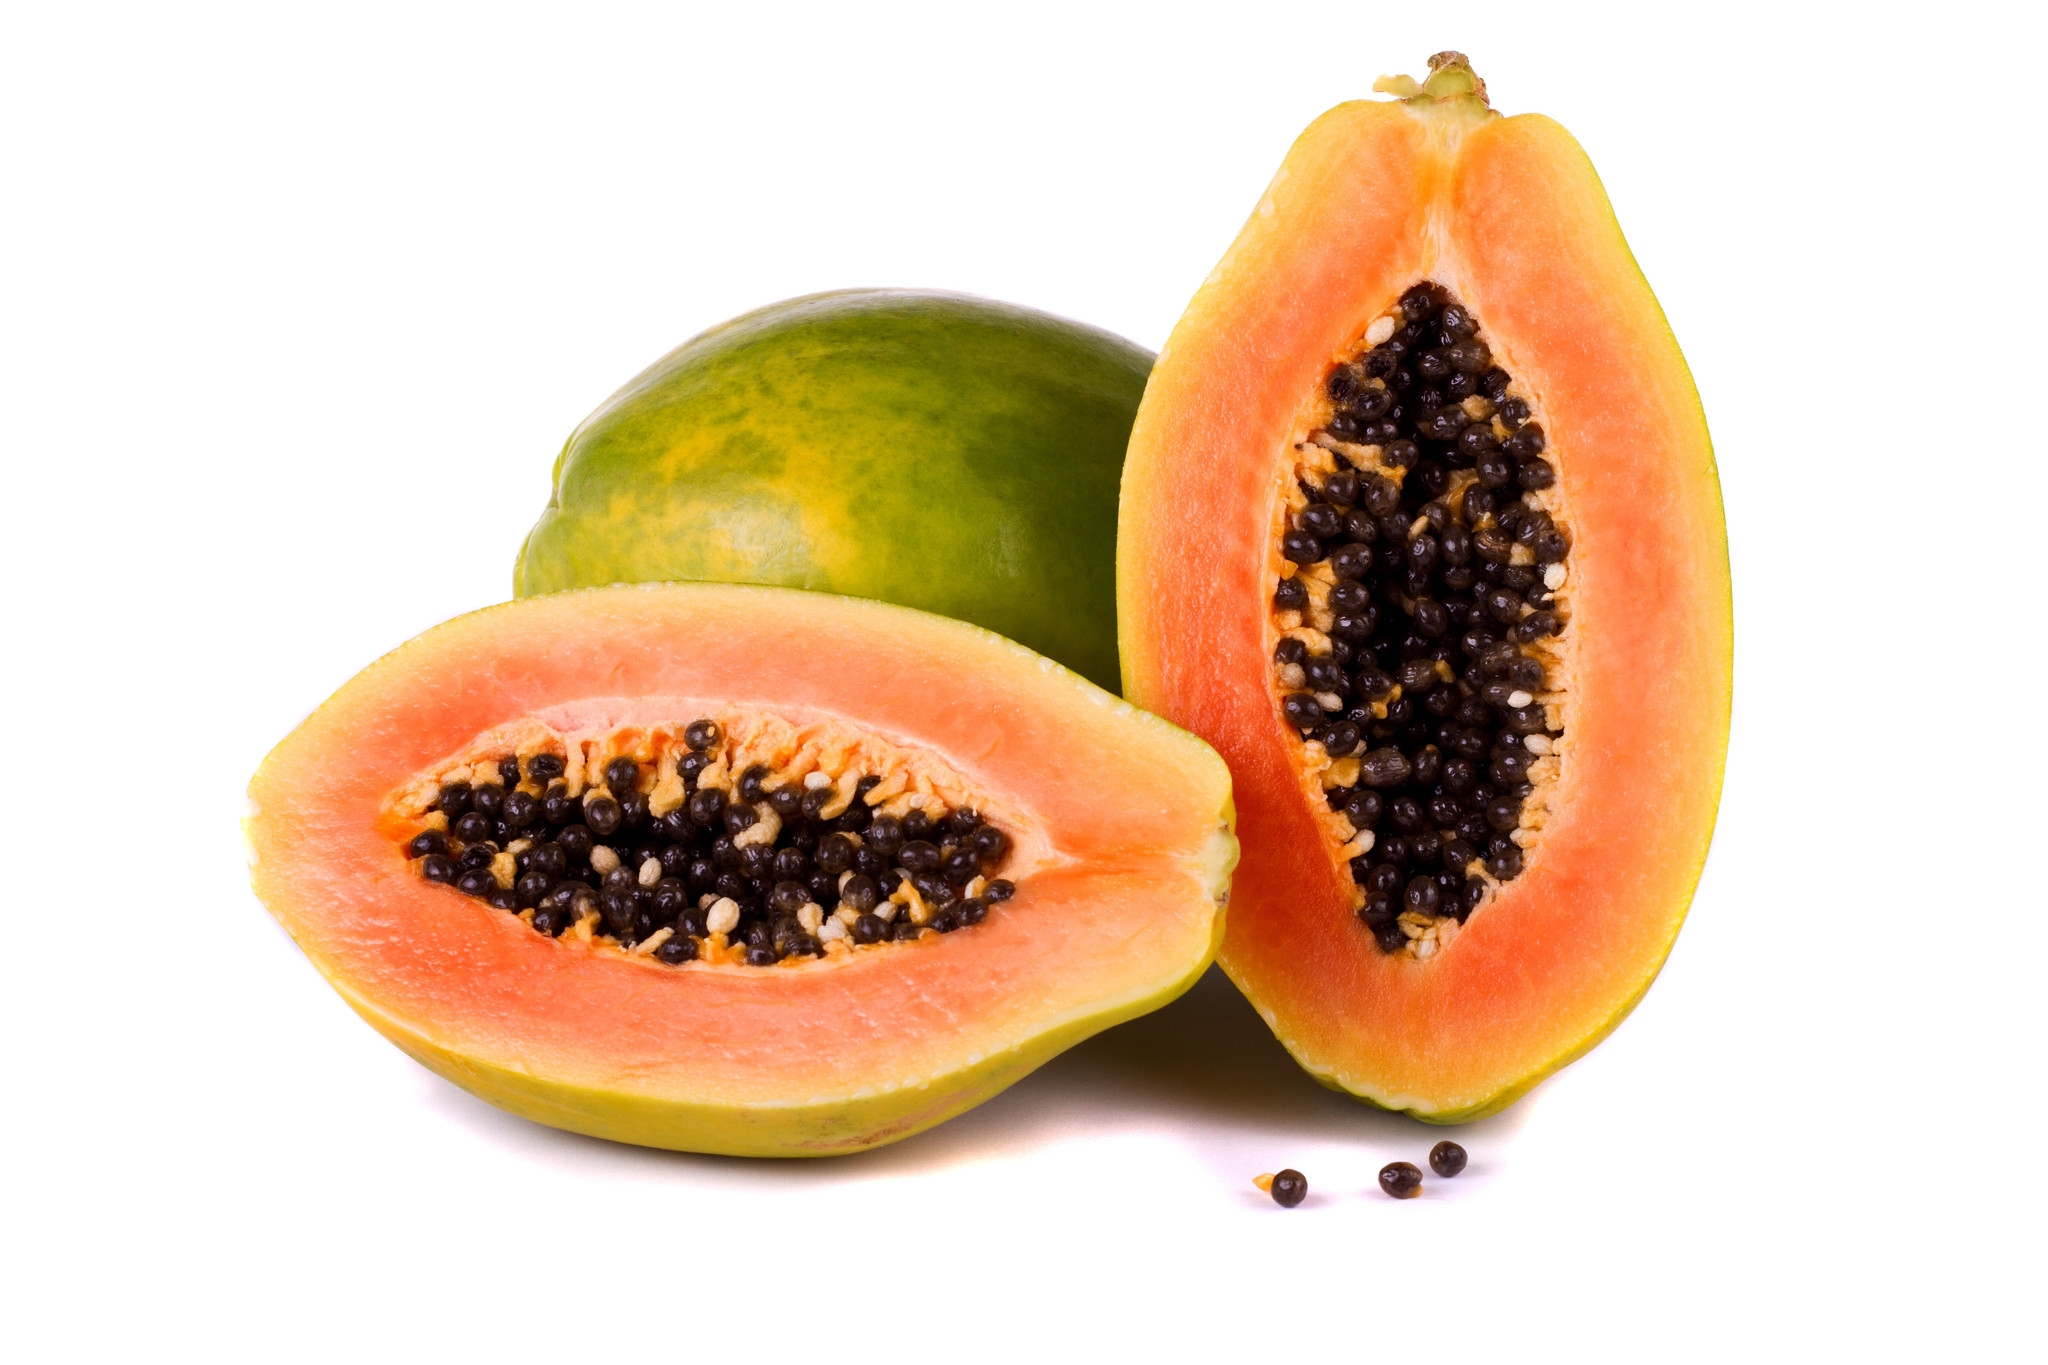 Papaya with Yellow Flesh 59.08 Kb